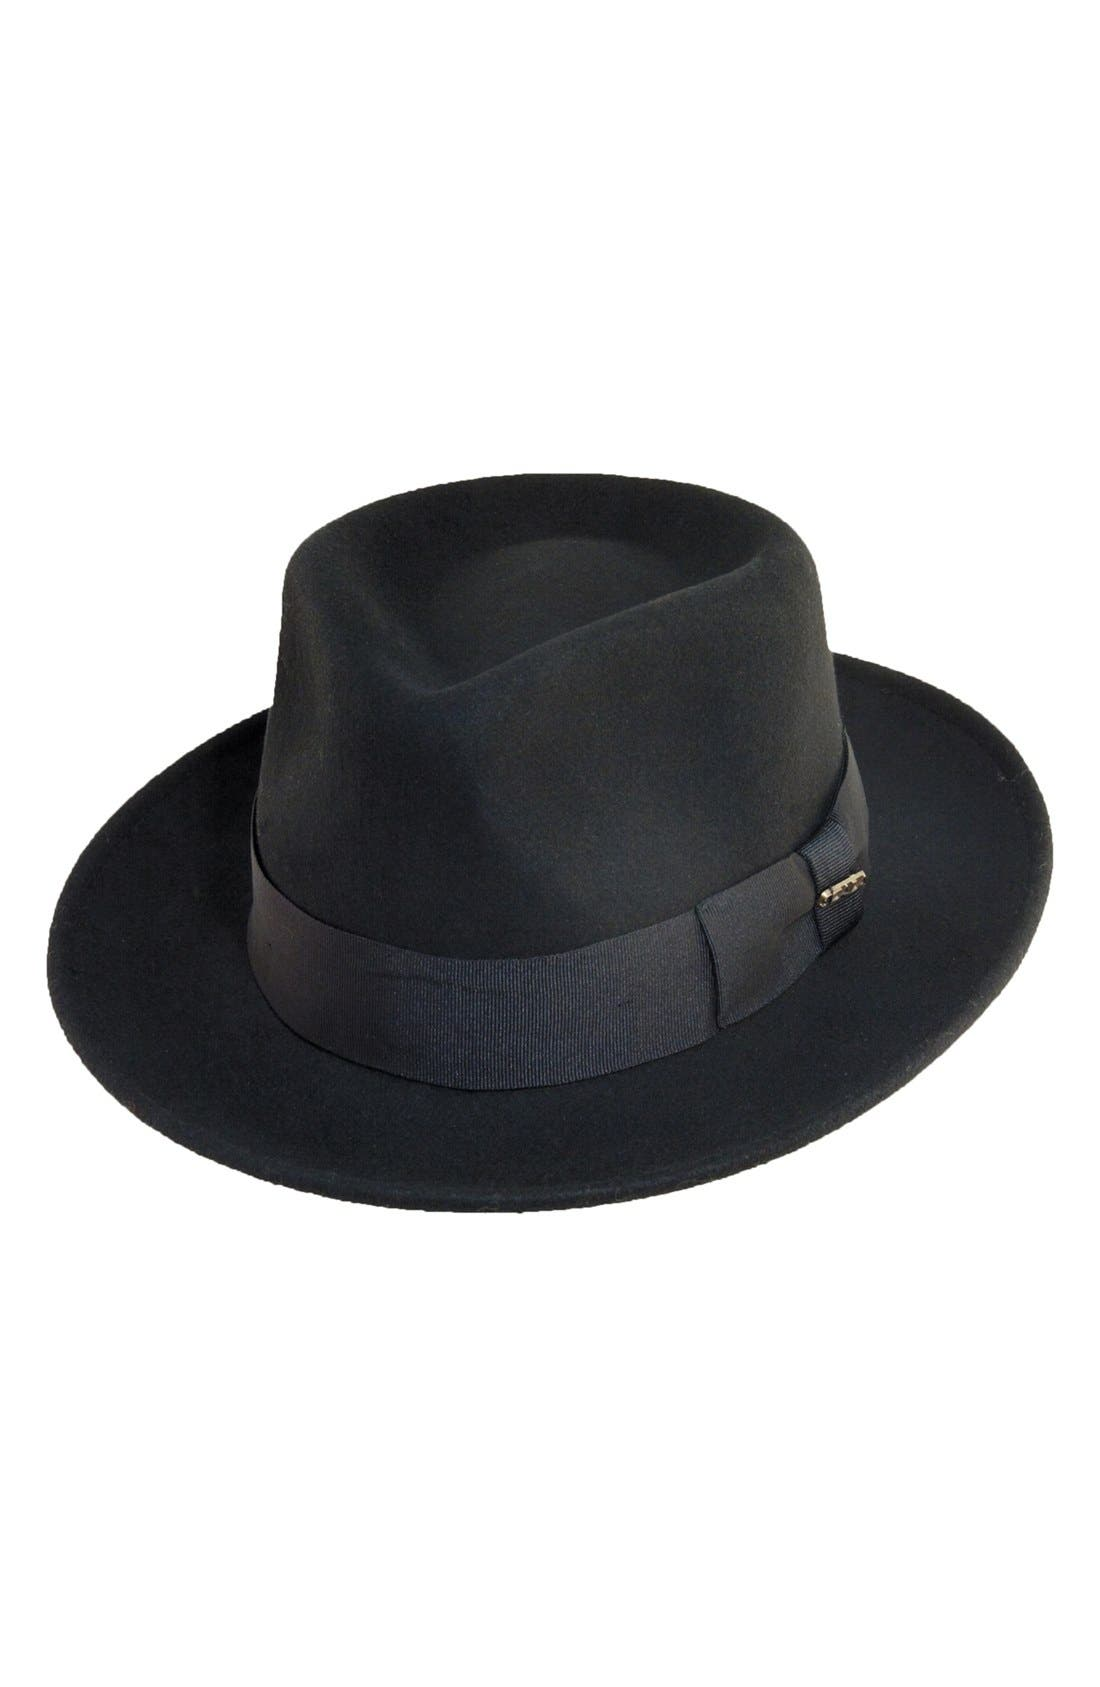 7e1dc780a3703 Men s Hats